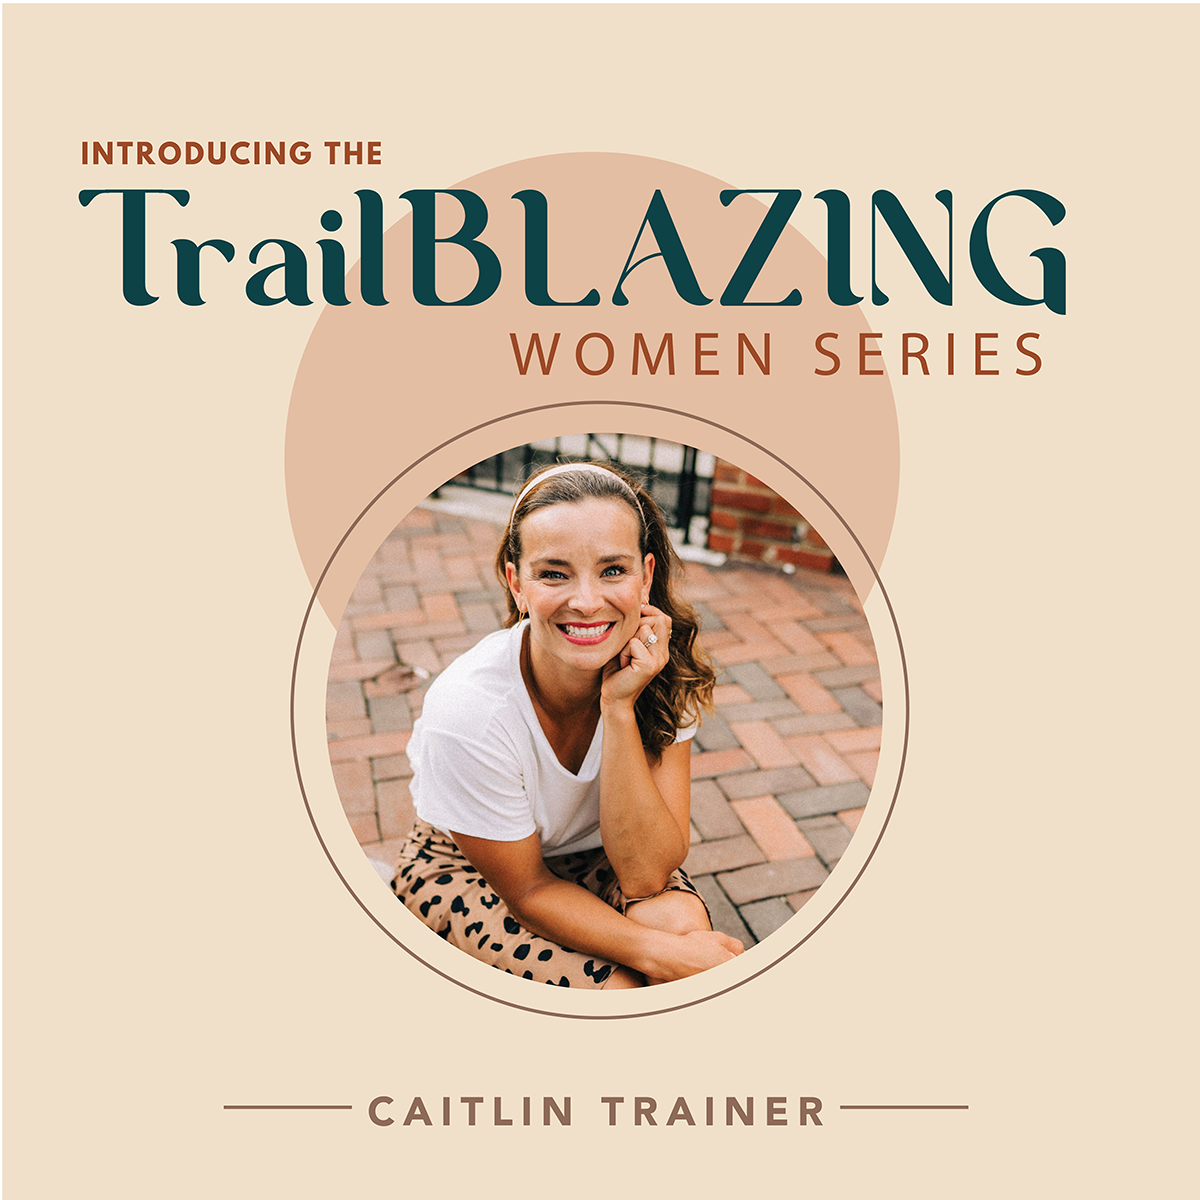 Trailblazing Women - Caitlin Trainer